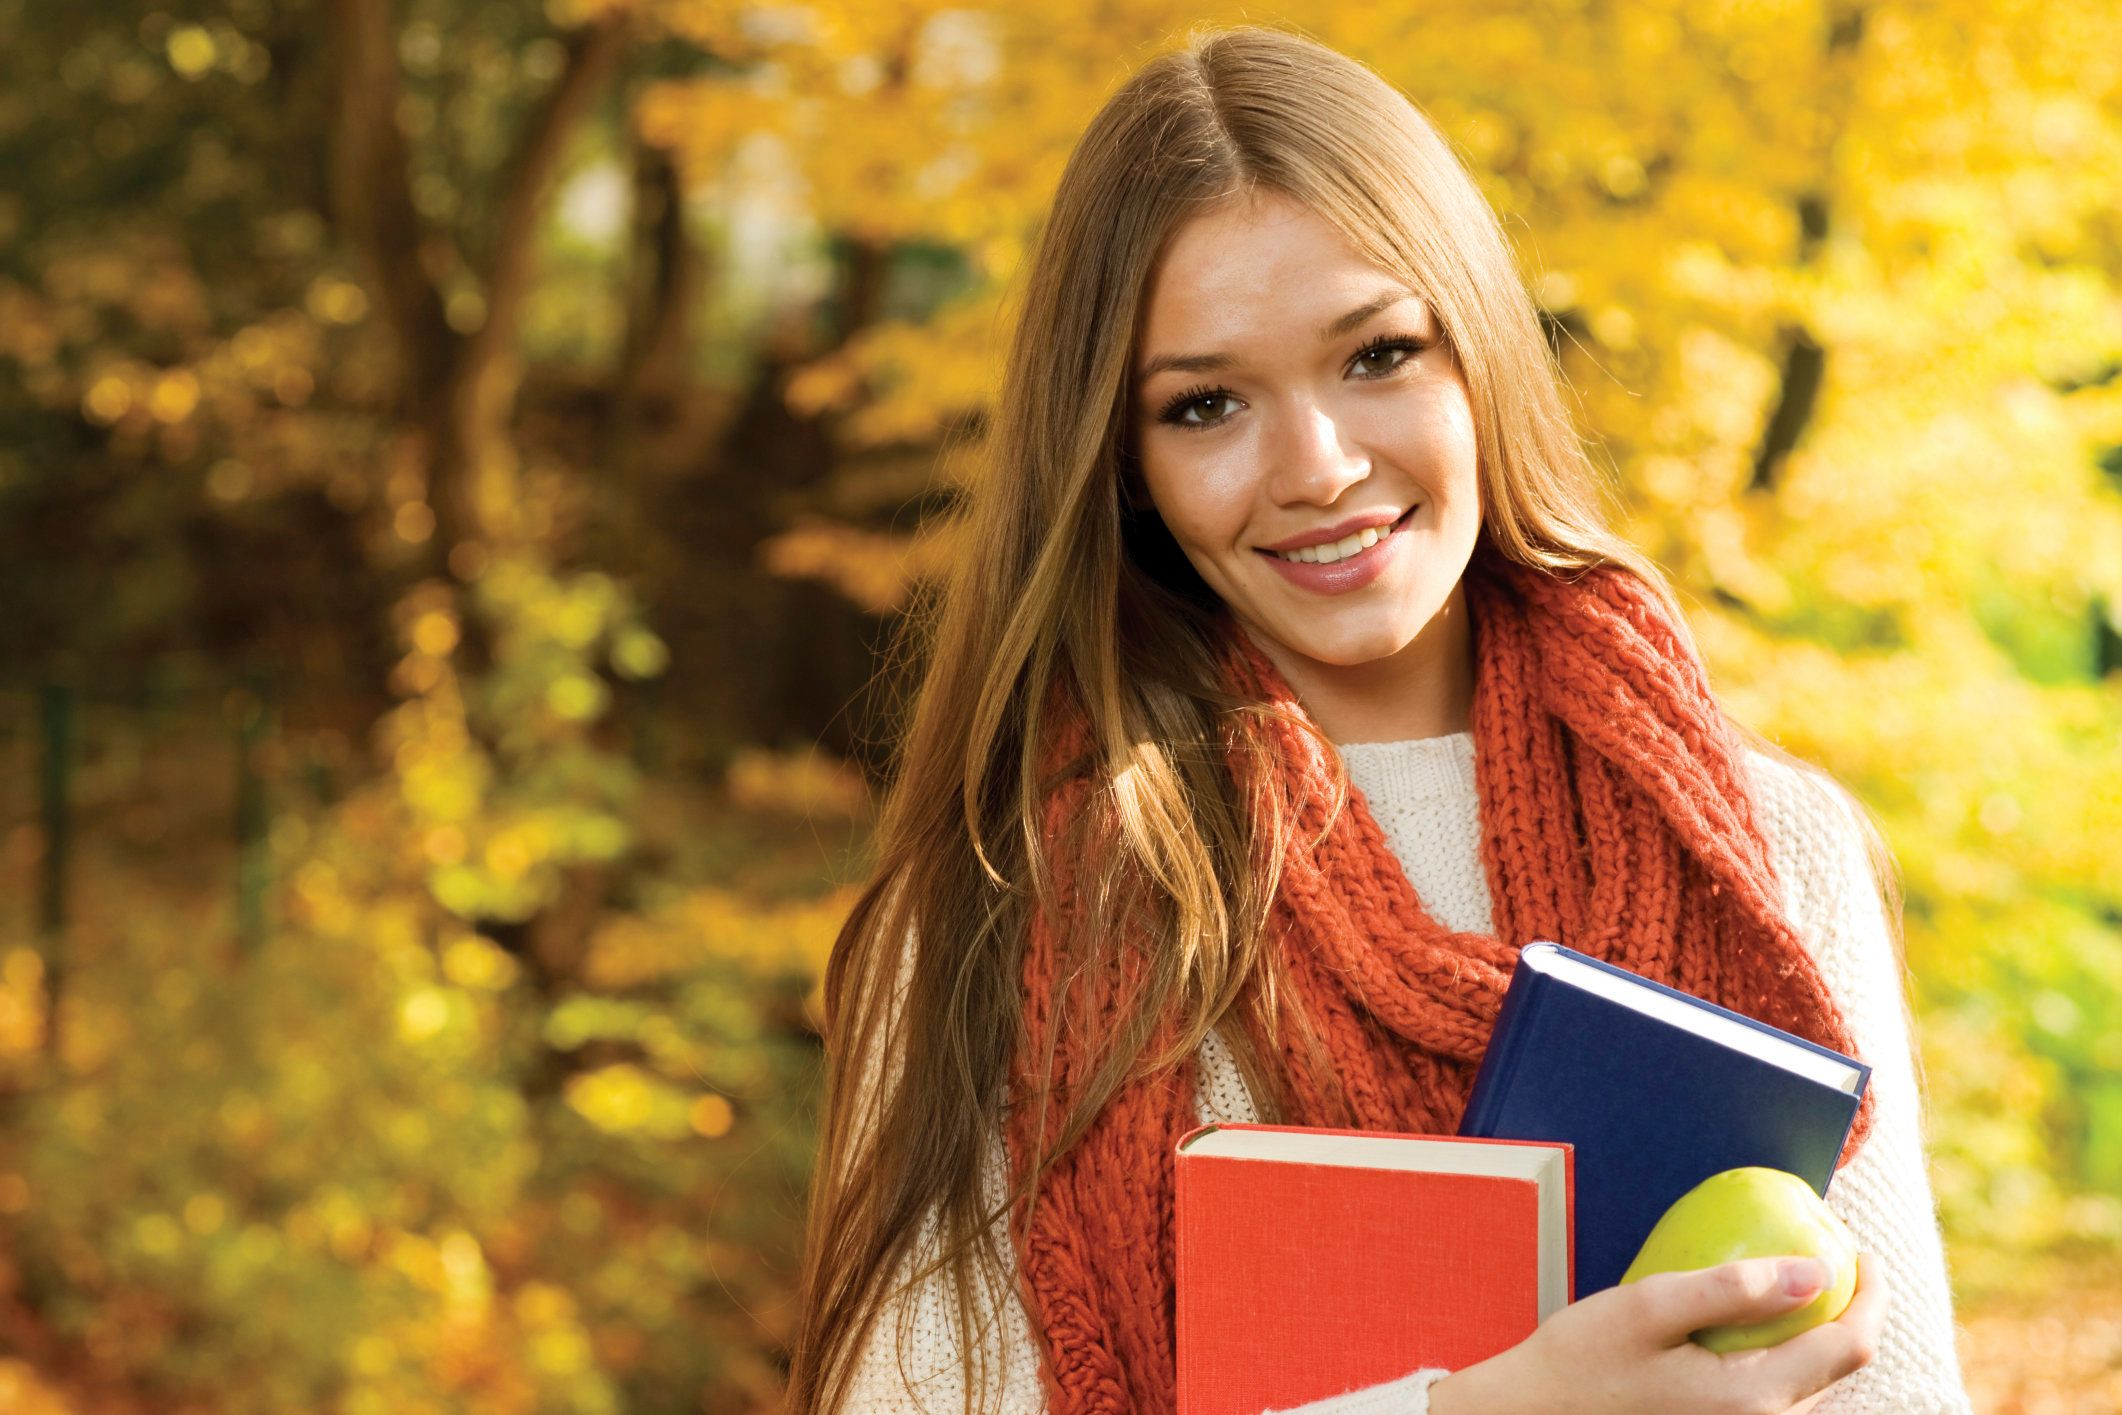 Young college girl with books smiling at camera